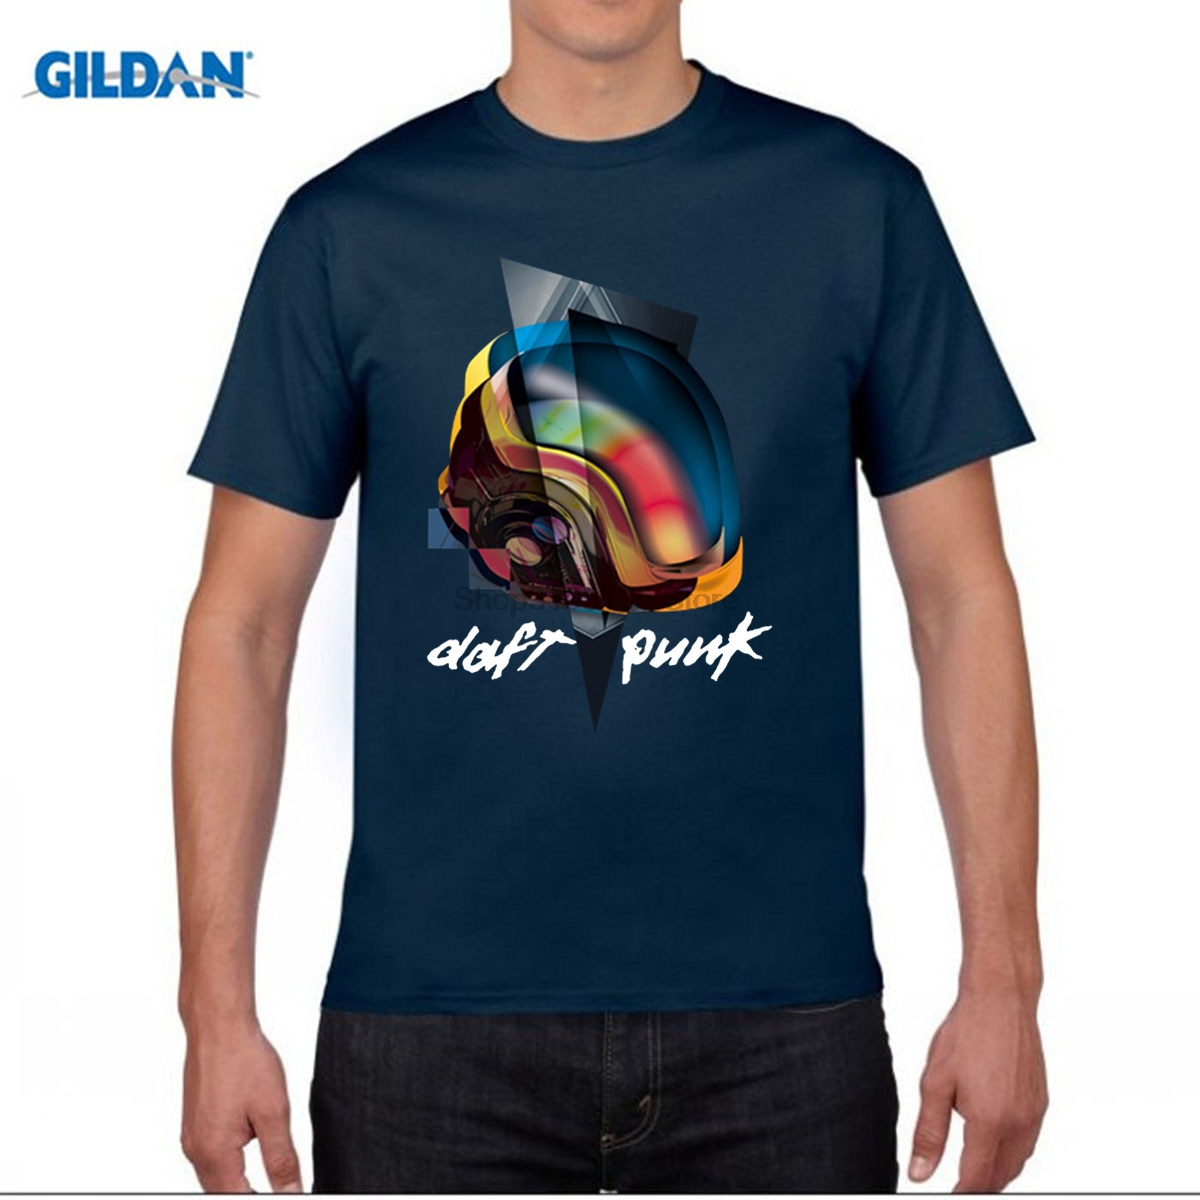 GILDAN funny men t shirt Daft Punk T Shirt Band T-shirt Men Women Clothing Top Plus Size Cotton shirt